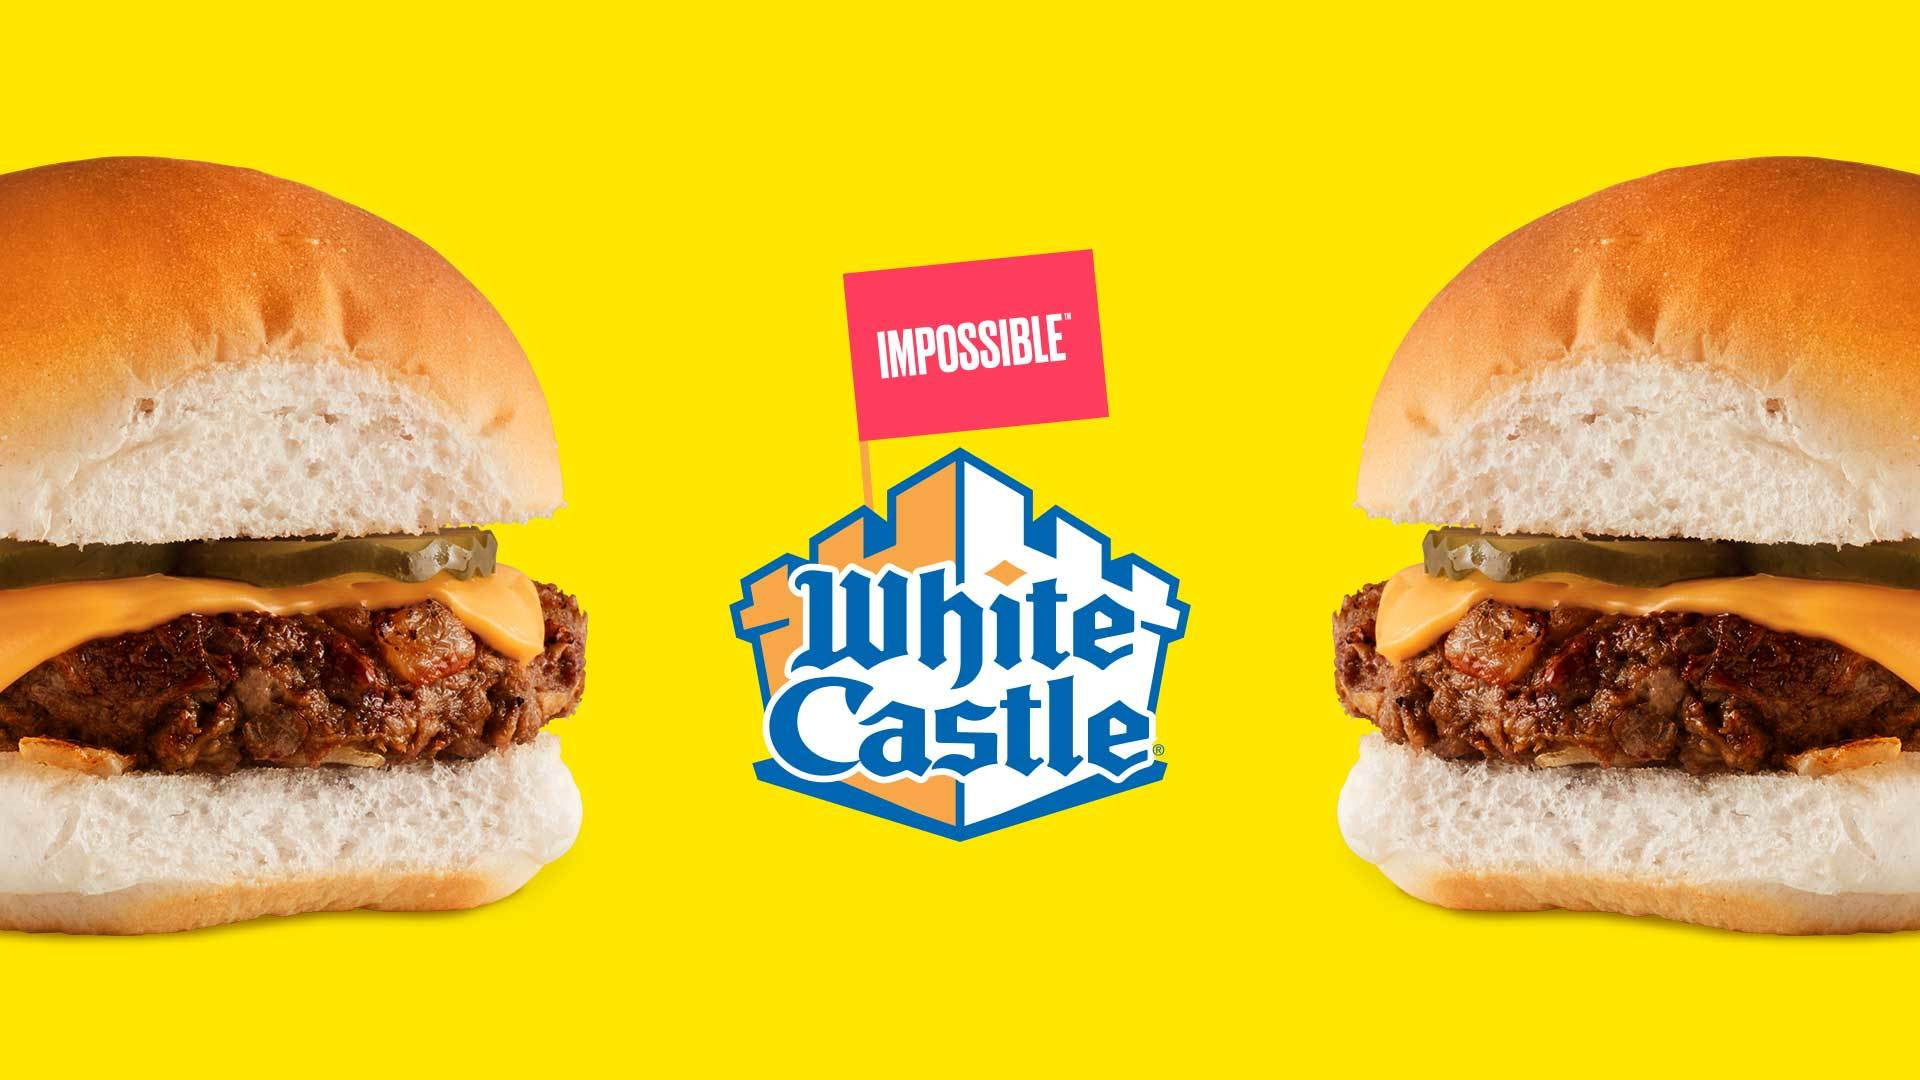 White Castle is the first national fast-food chain to offer the plant-based Impossible Burger.